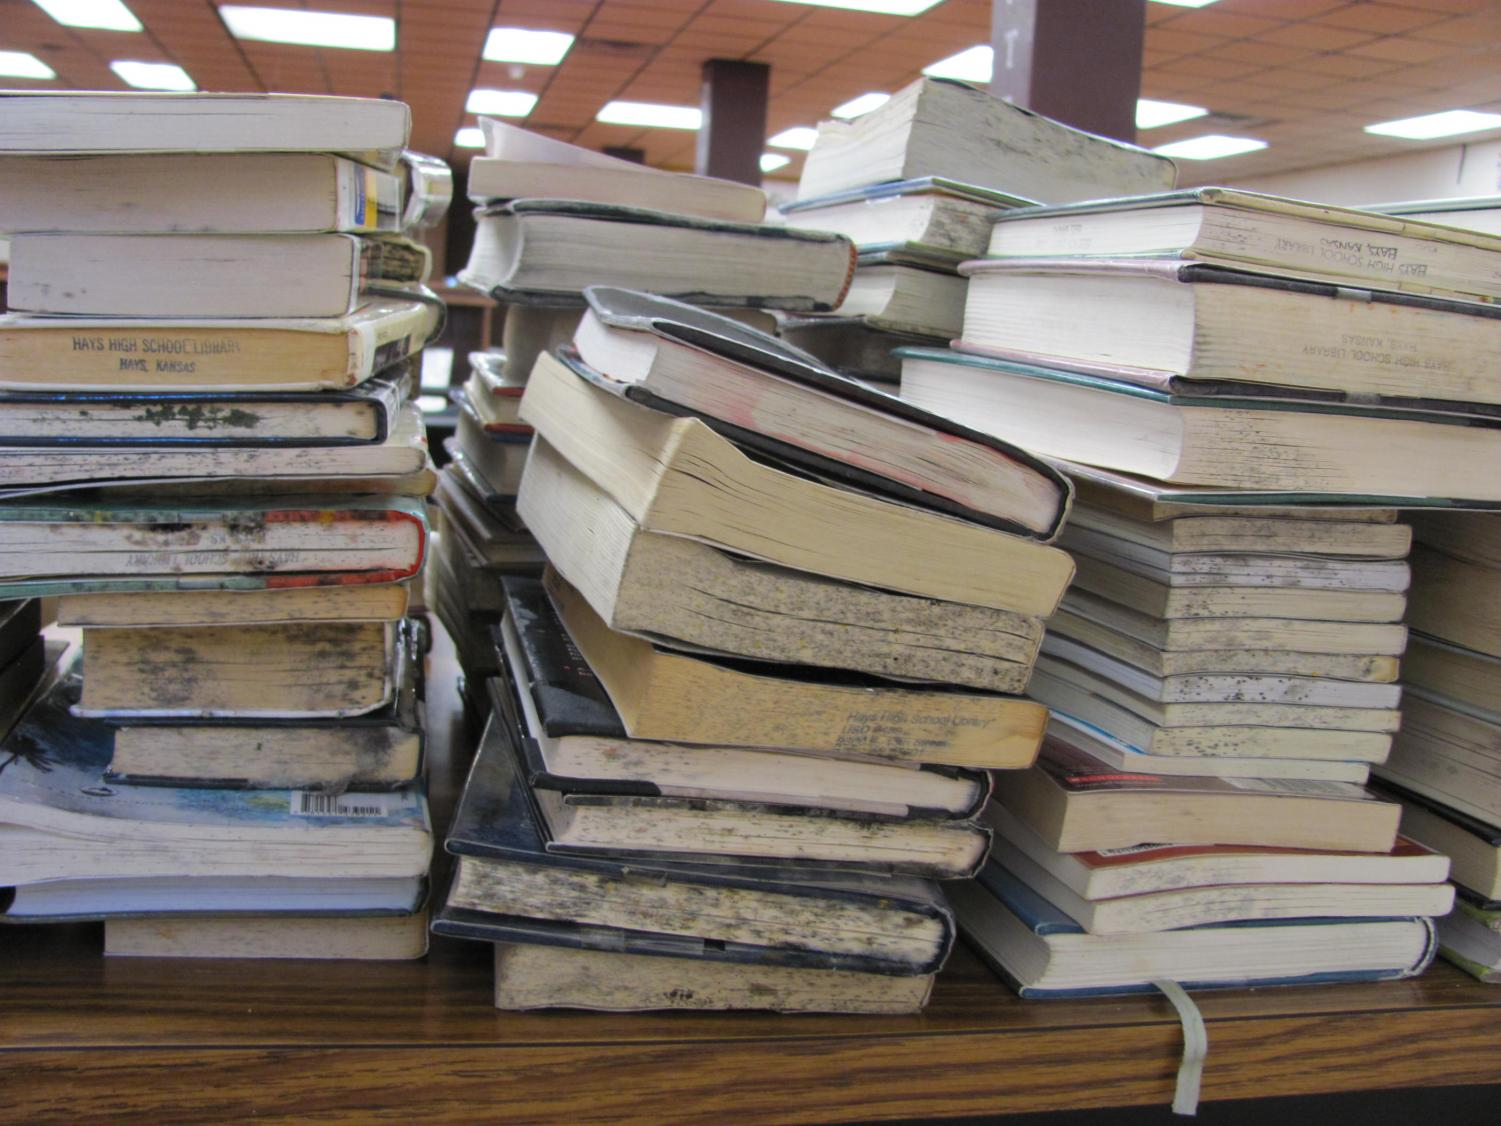 Over $4,000 in damages were caused by the water damage in the library.